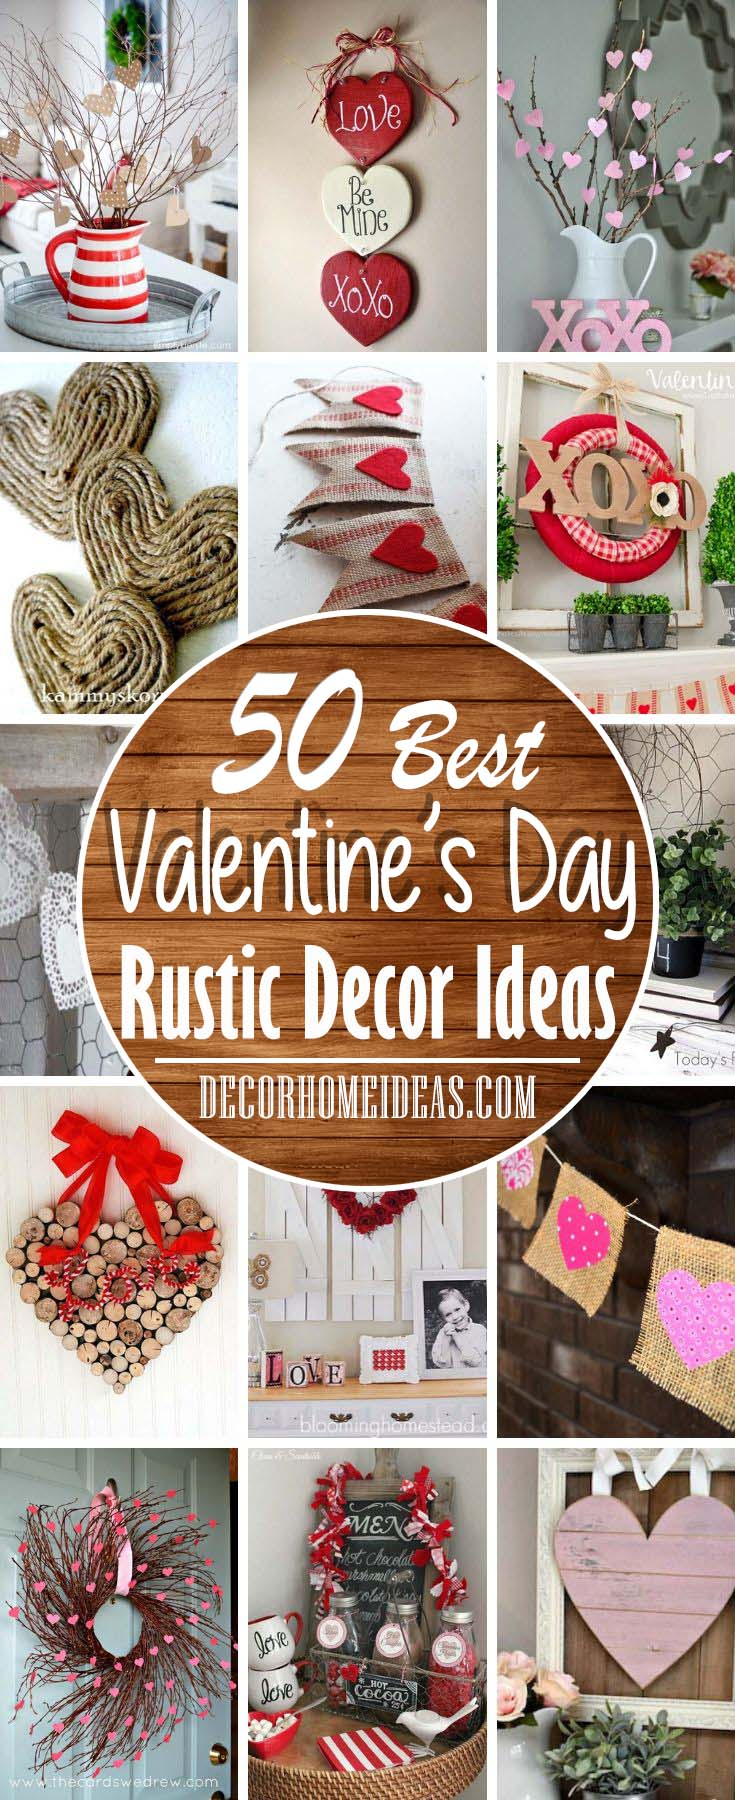 Best DIY Rustic Valentines Day Decor Ideas. #diy #rustic #valentinesday #decor #decorhomeideas